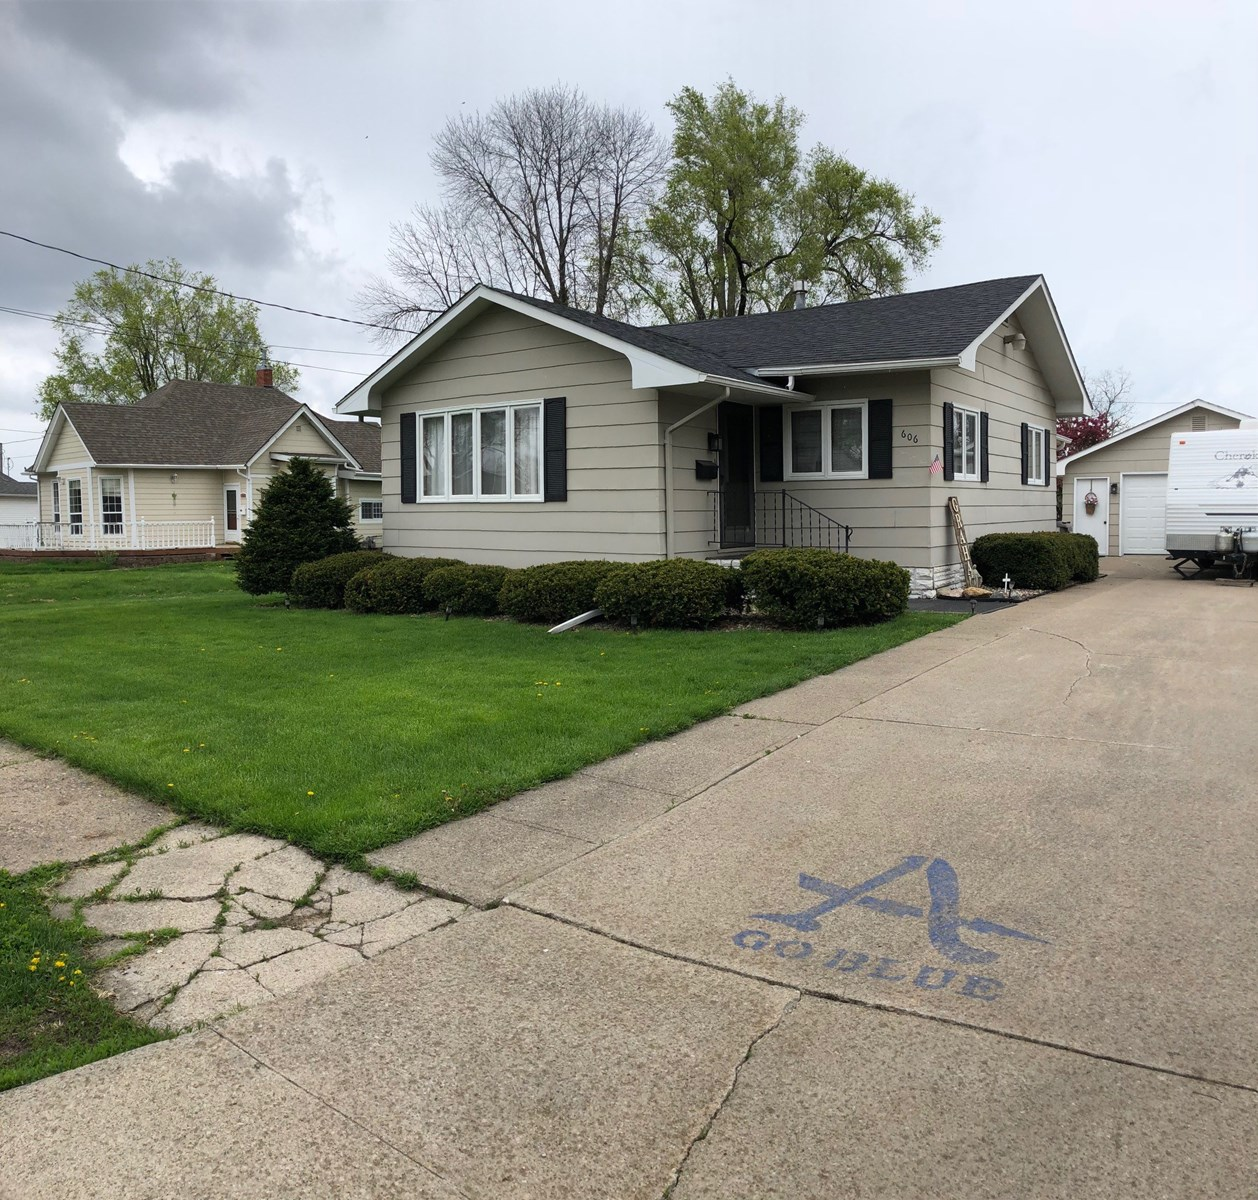 Home for Sale, Albia, IA